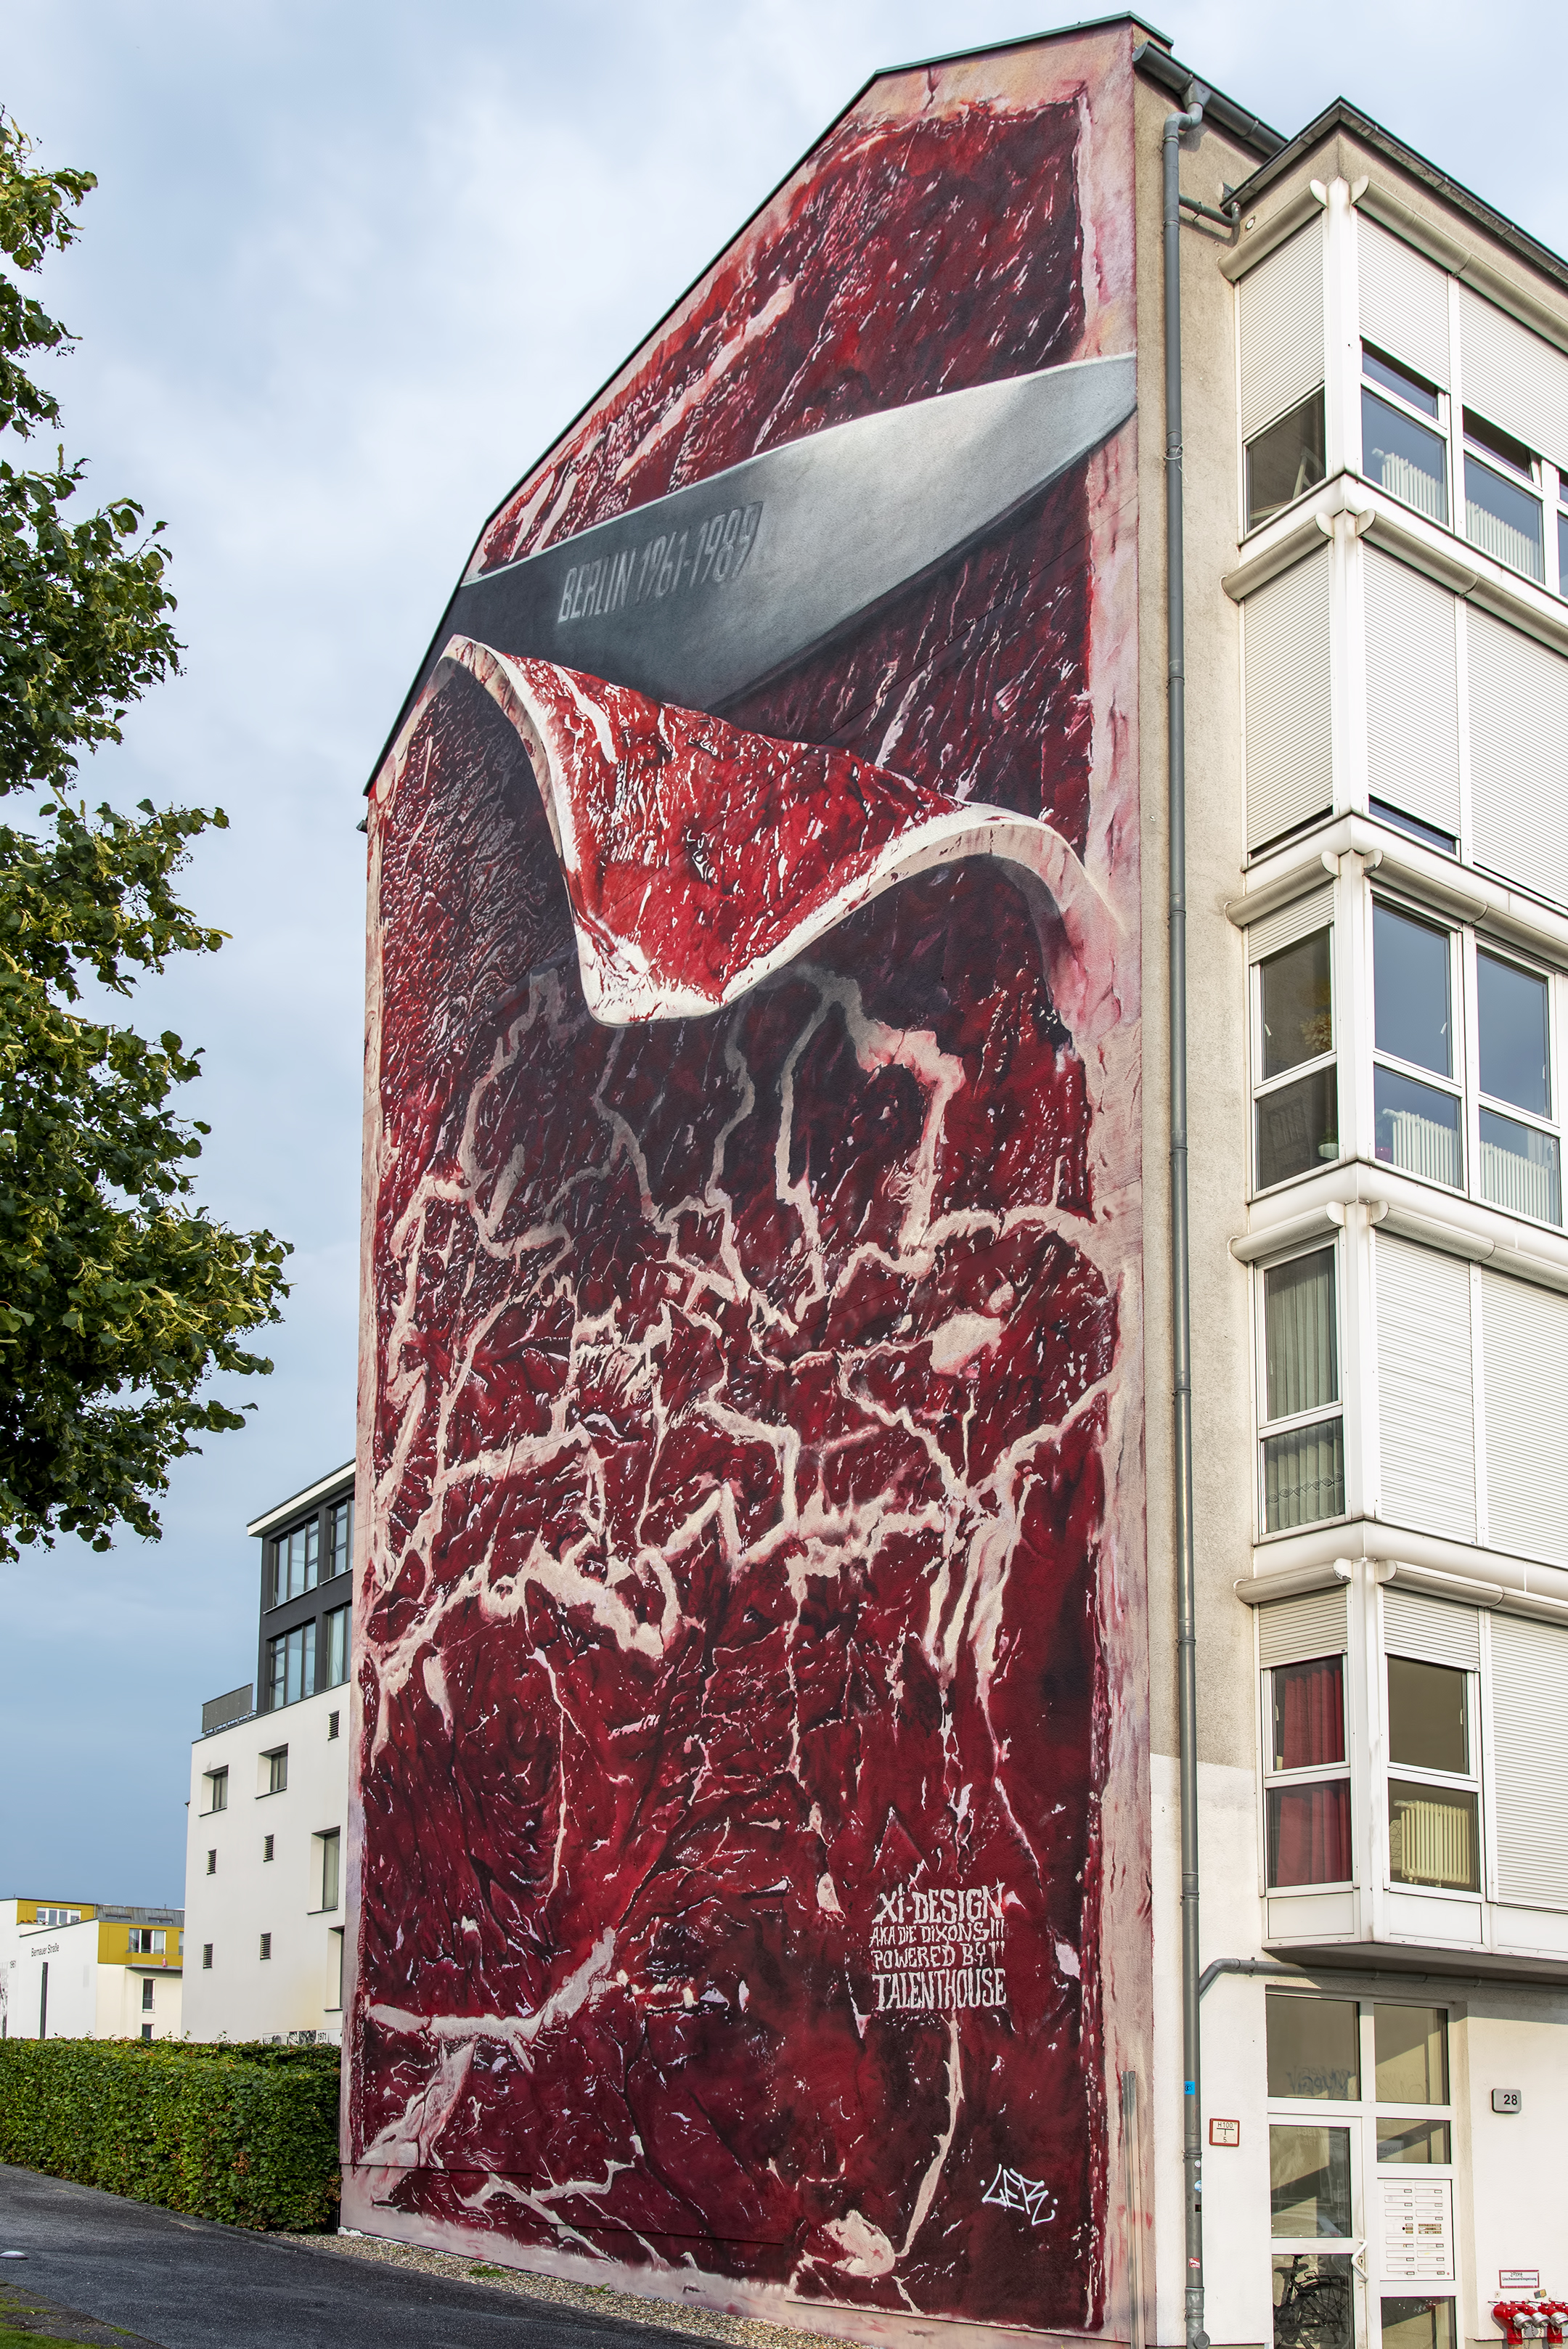 Berlin Wall Memorial Bernauer Street Germany mural meat sliced Artist Marcus Haas Die Dixons graffiti Xi-Design Talenthouse